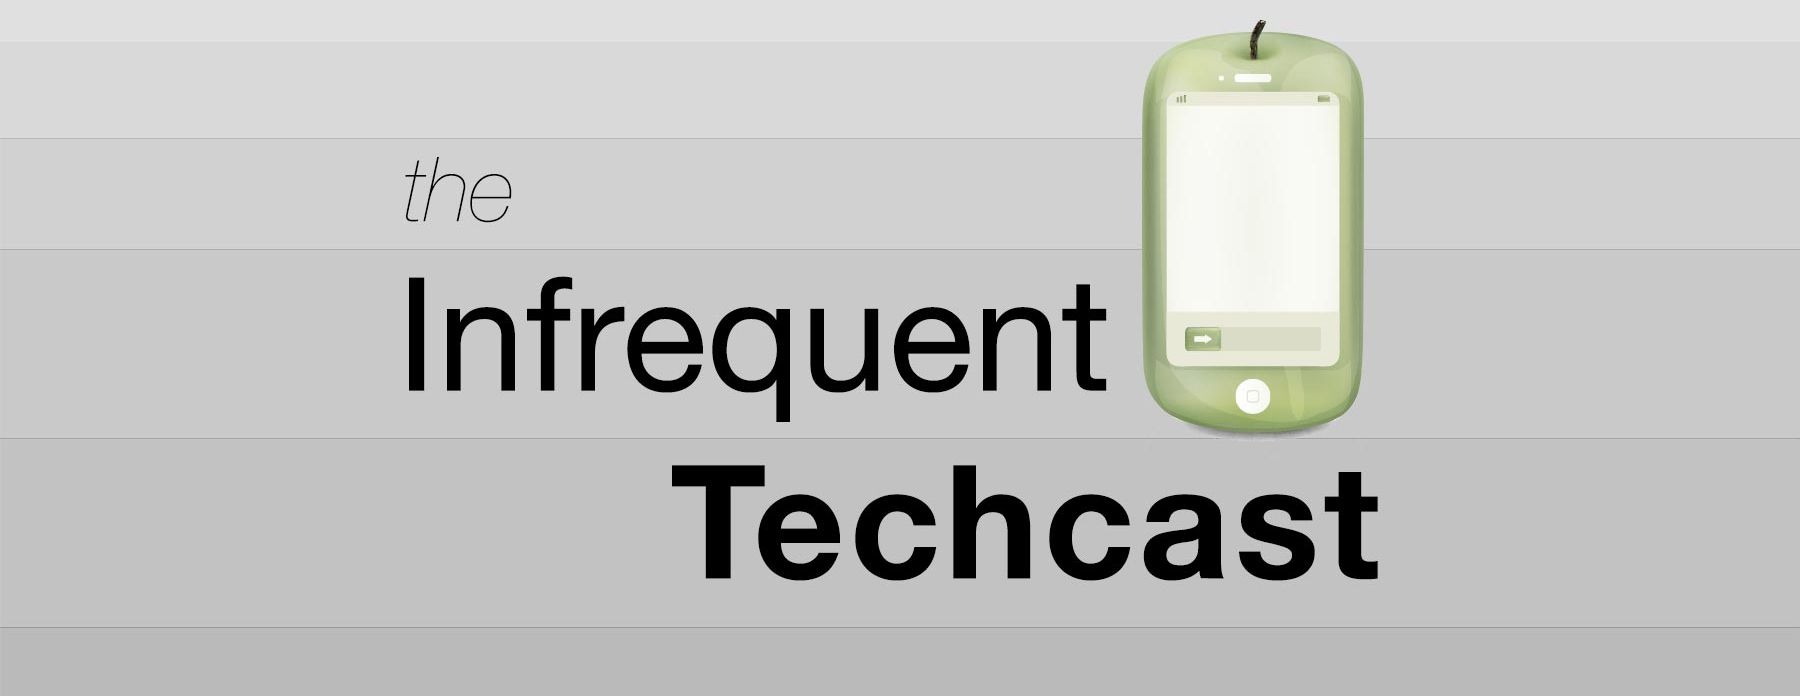 The Infrequent Techcast